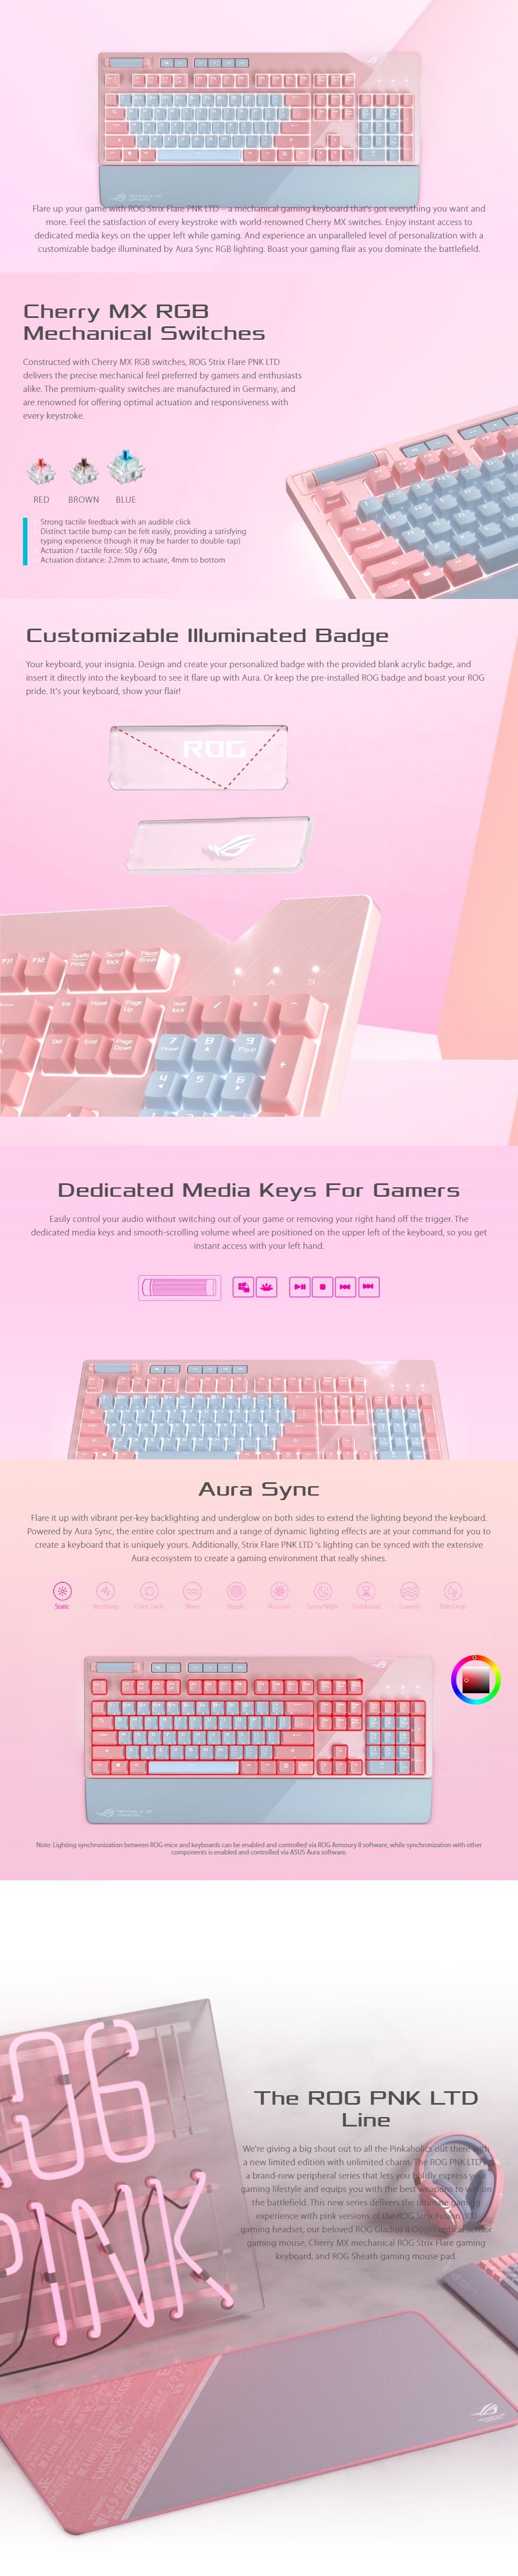 asus-rog-strix-flare-mechanical-gamiang-keyboard-cherry-mx-blue-pink-edition-ac28622-4-1-.jpg